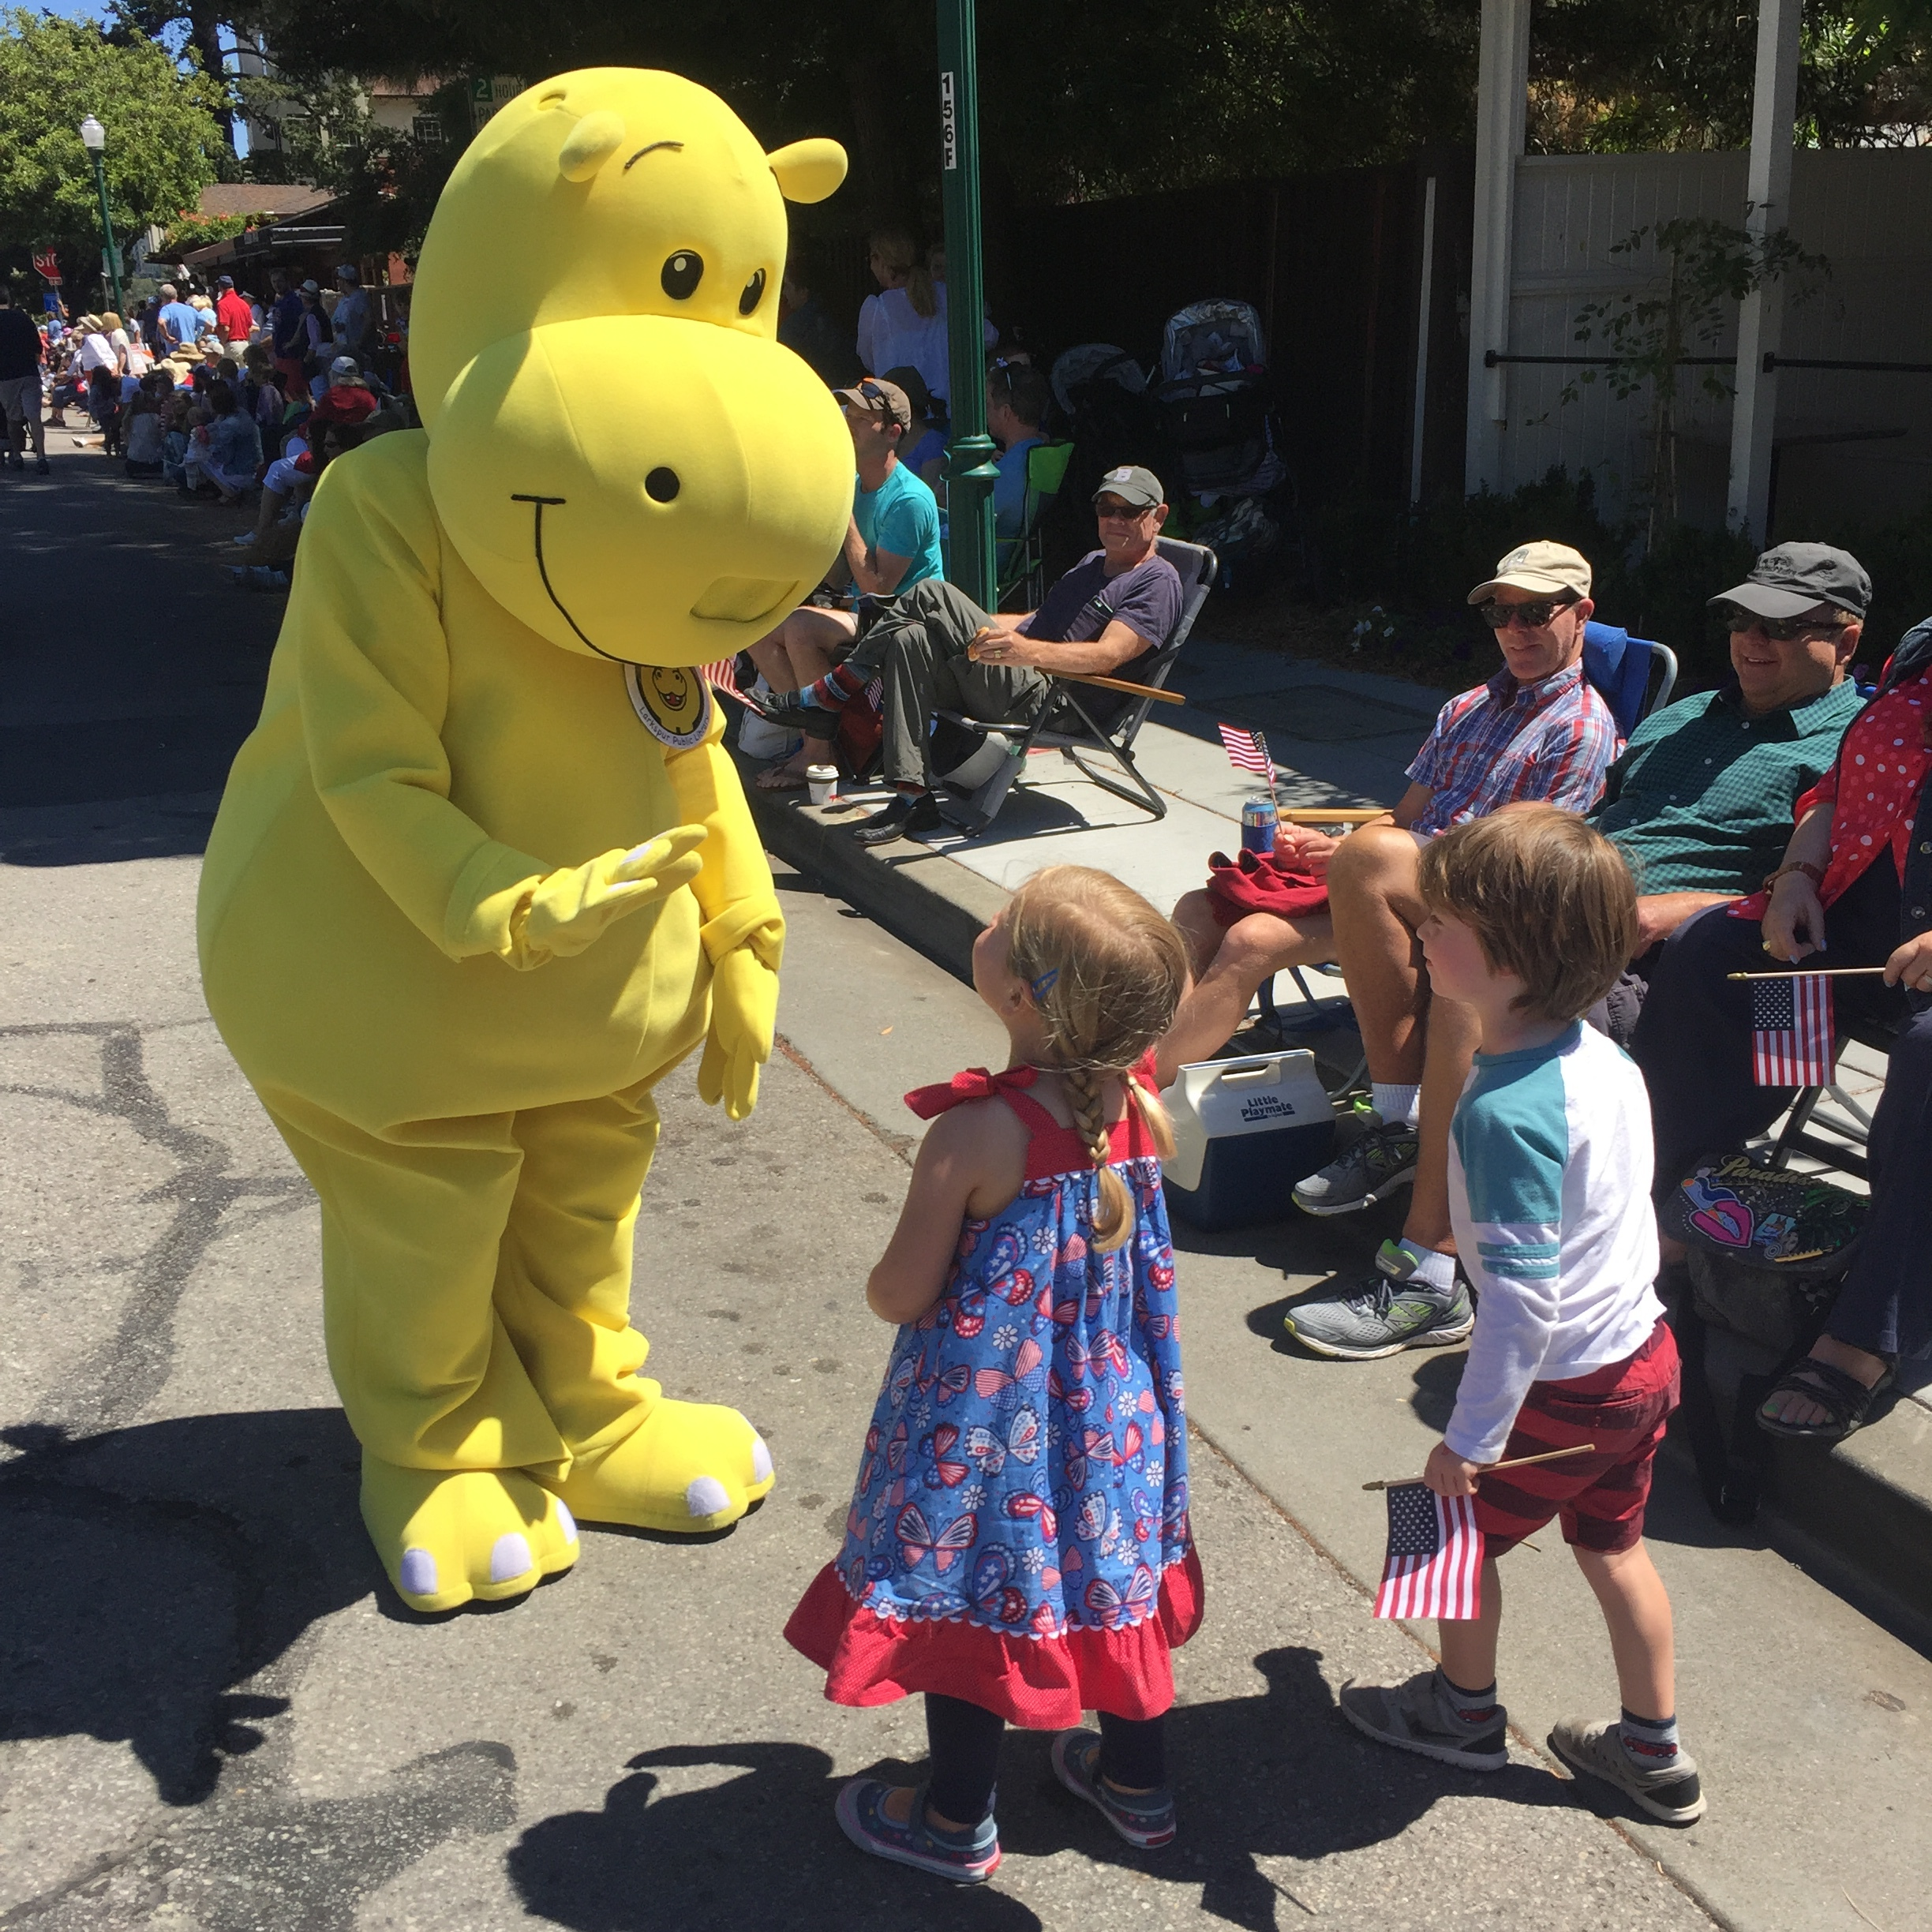 Our Mission - The Friends of the Larkspur Library is committed to supporting the library's programs, cultural events, books, and materials. We strive to instill the love of reading and the excitement of learning in library patrons of all ages.